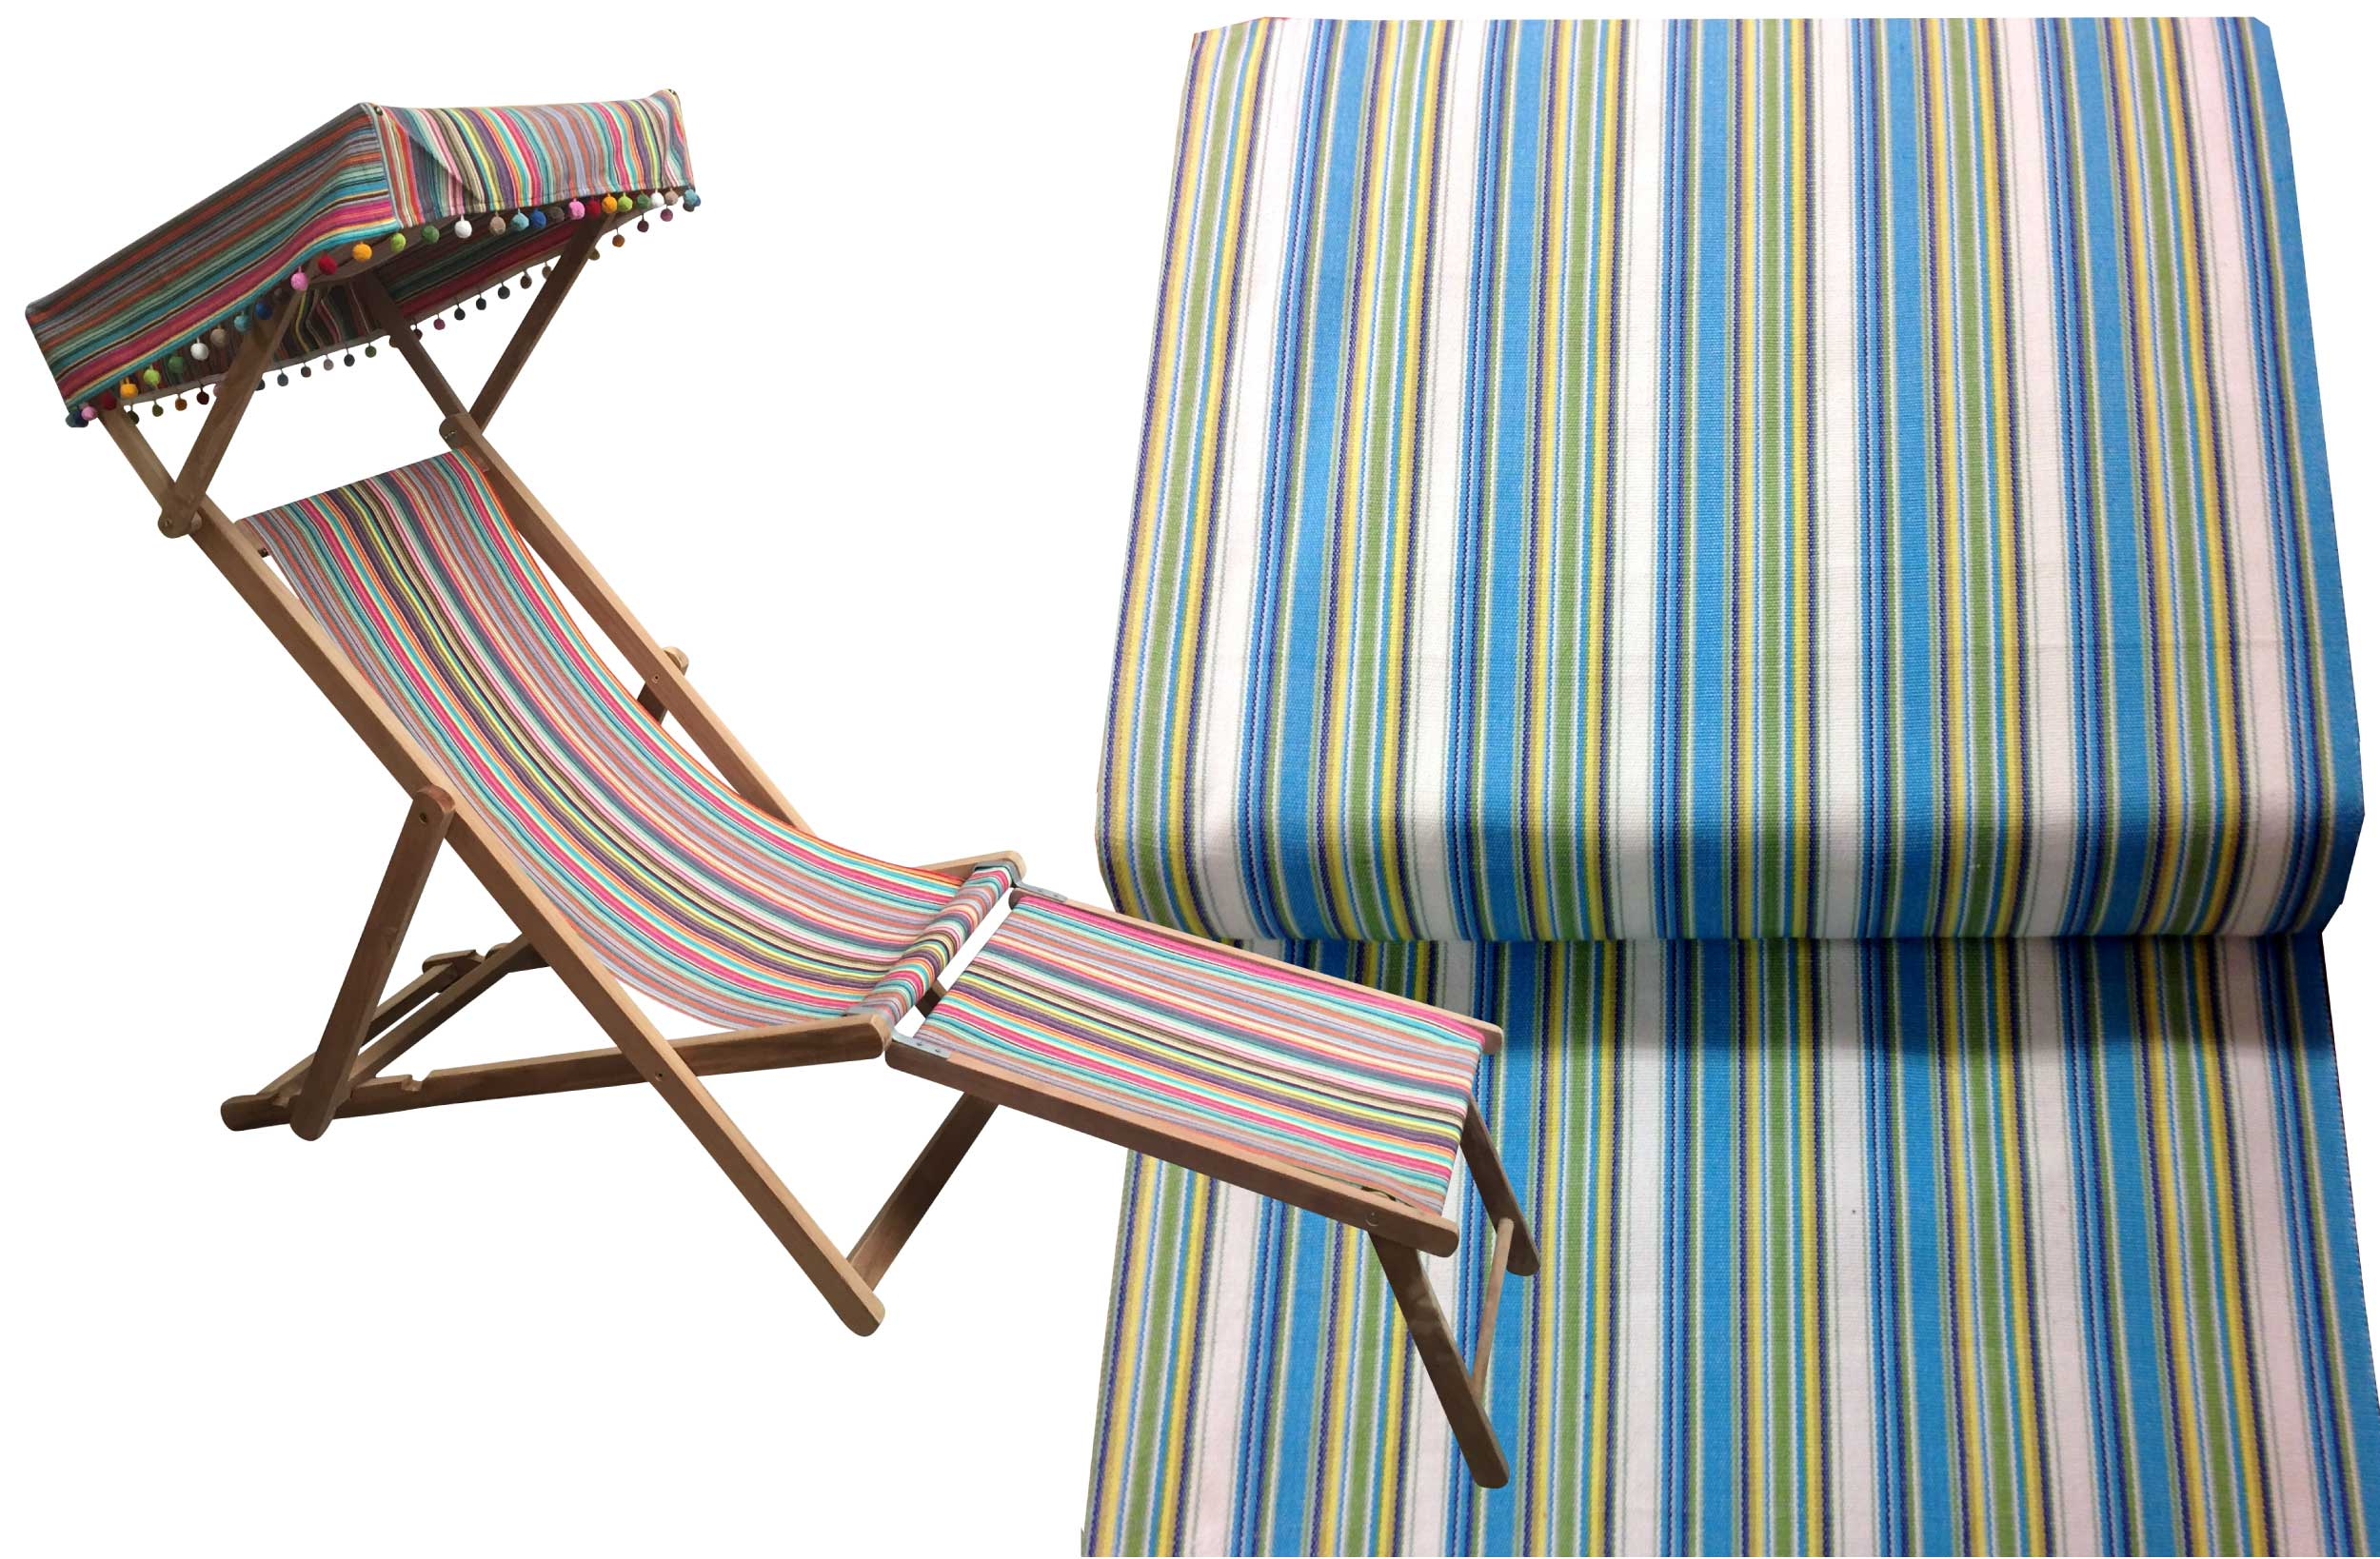 Turquoise, Green, White Stripe Deckchair with Canopy and Footstool